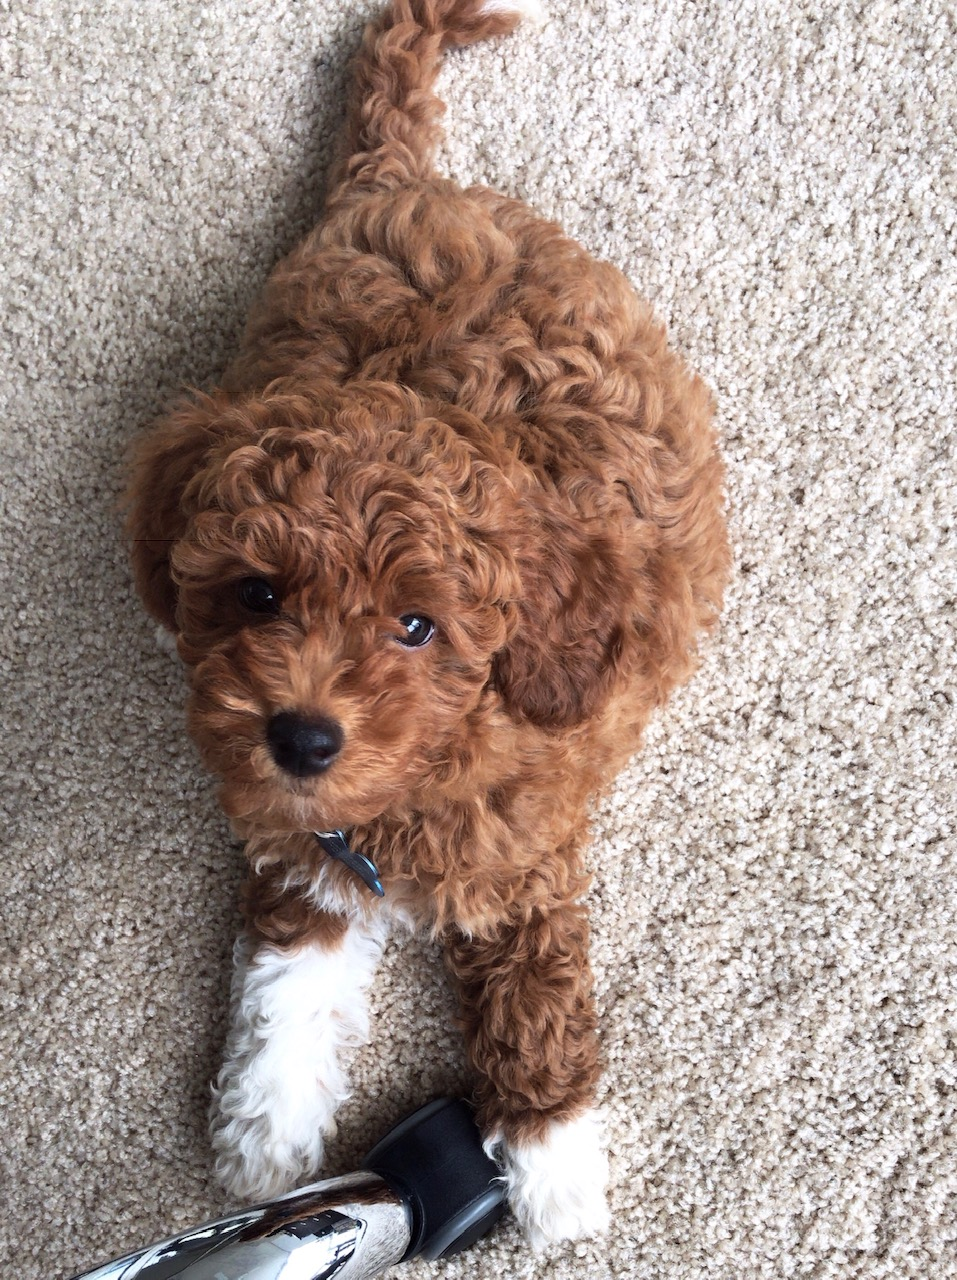 Cavapoo puppy in office